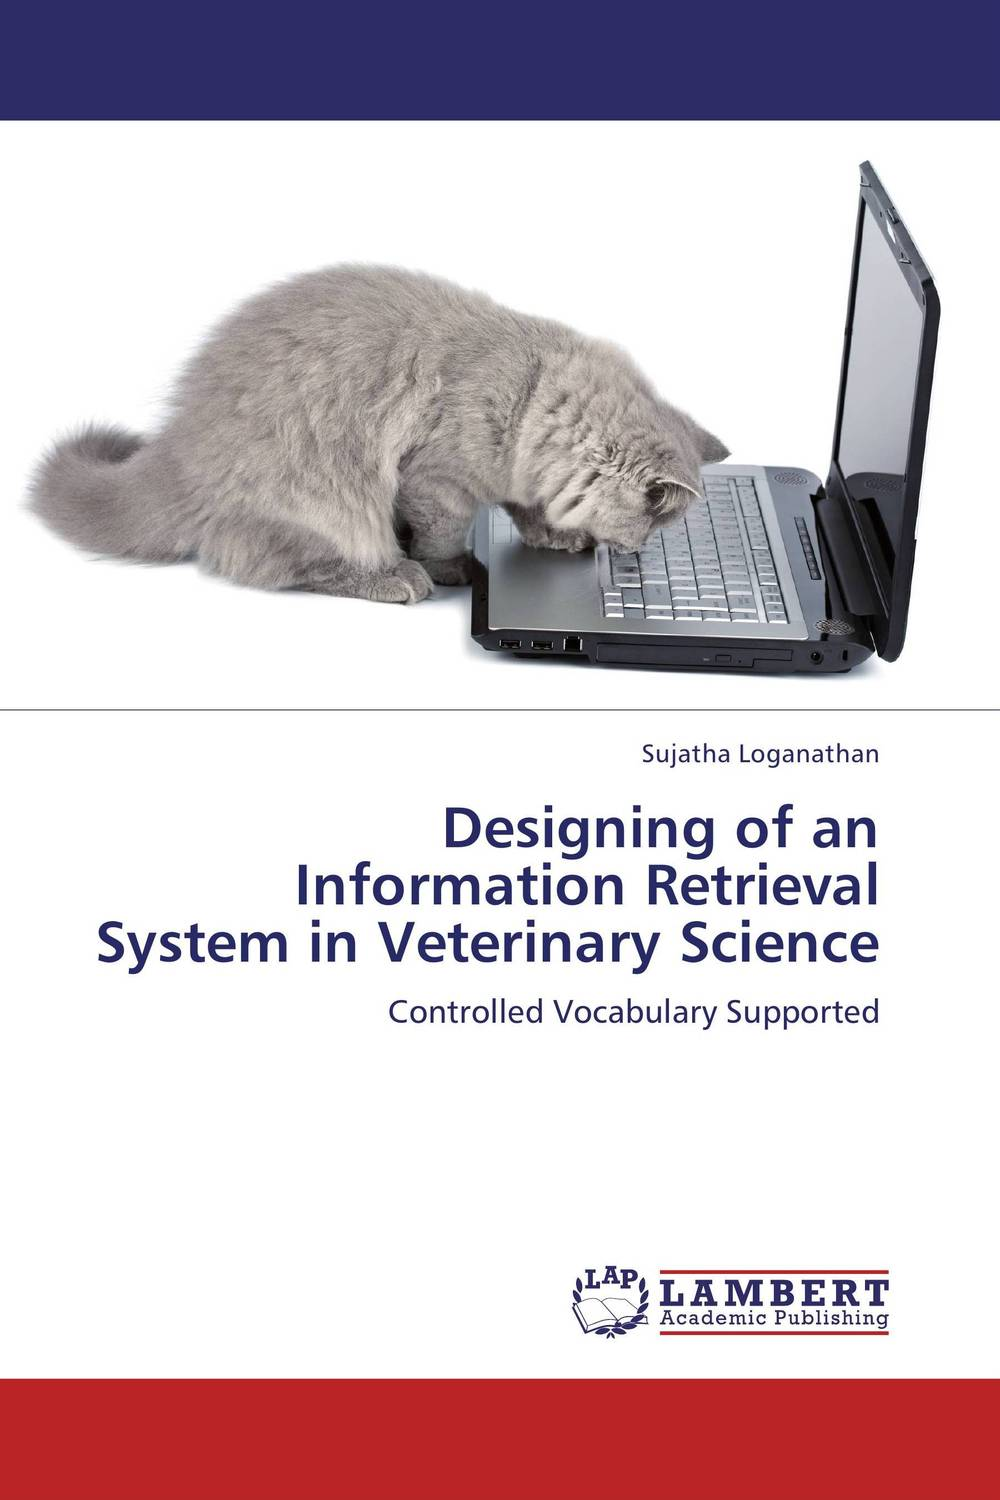 Designing of an Information Retrieval System in Veterinary Science fuzzy logic based information retrieval system